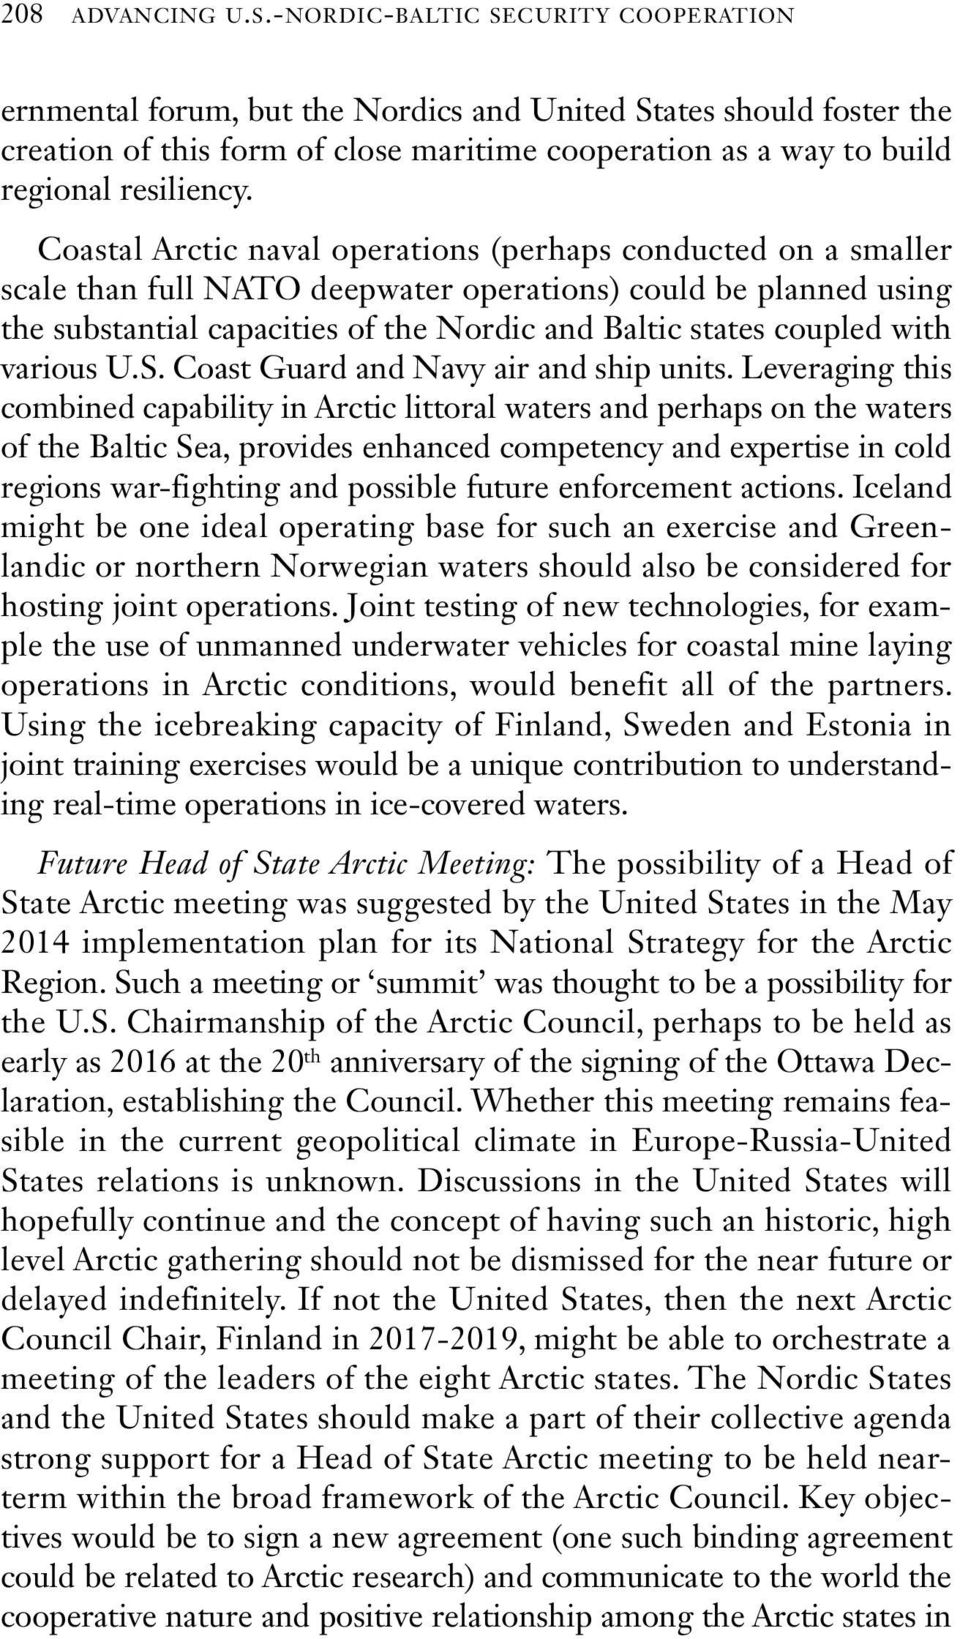 Coastal Arctic naval operations (perhaps conducted on a smaller scale than full NATO deepwater operations) could be planned using the substantial capacities of the Nordic and Baltic states coupled